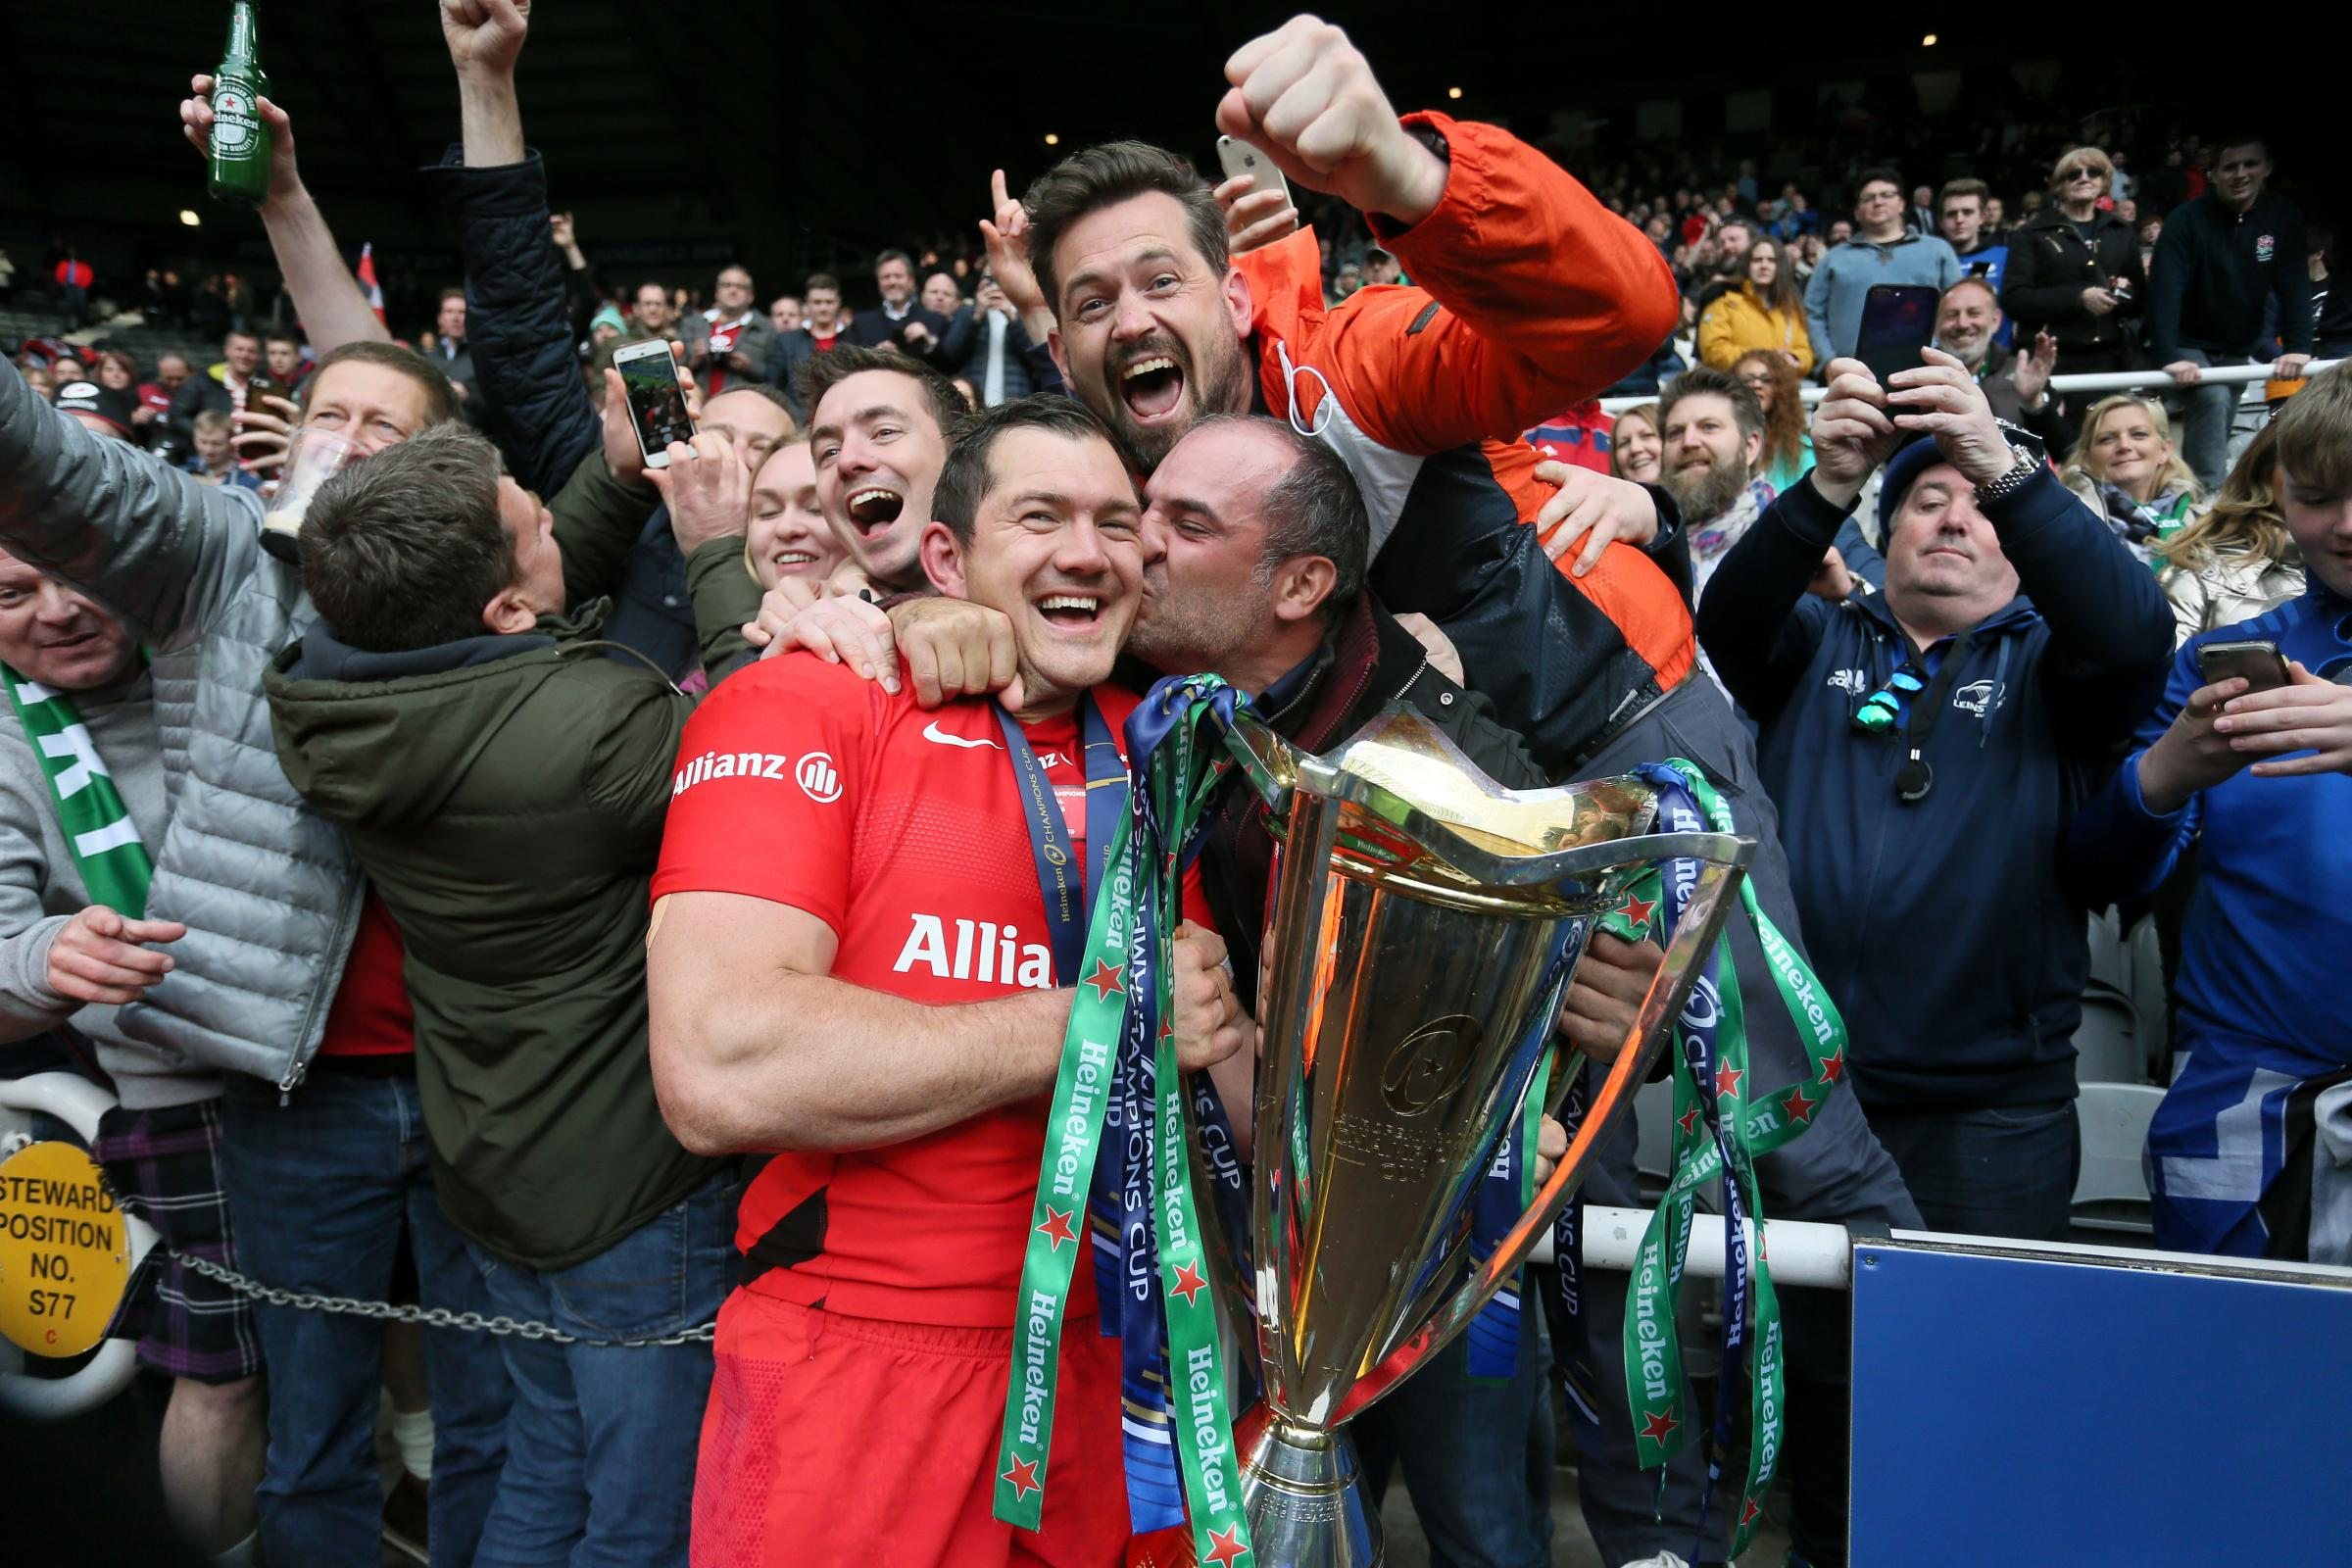 Saracens Alex Goode celebrates with fans after the Champions Cup Final at St James' Park, Newcastle. Picture: Richard Sellers/PA Wire/PA Images